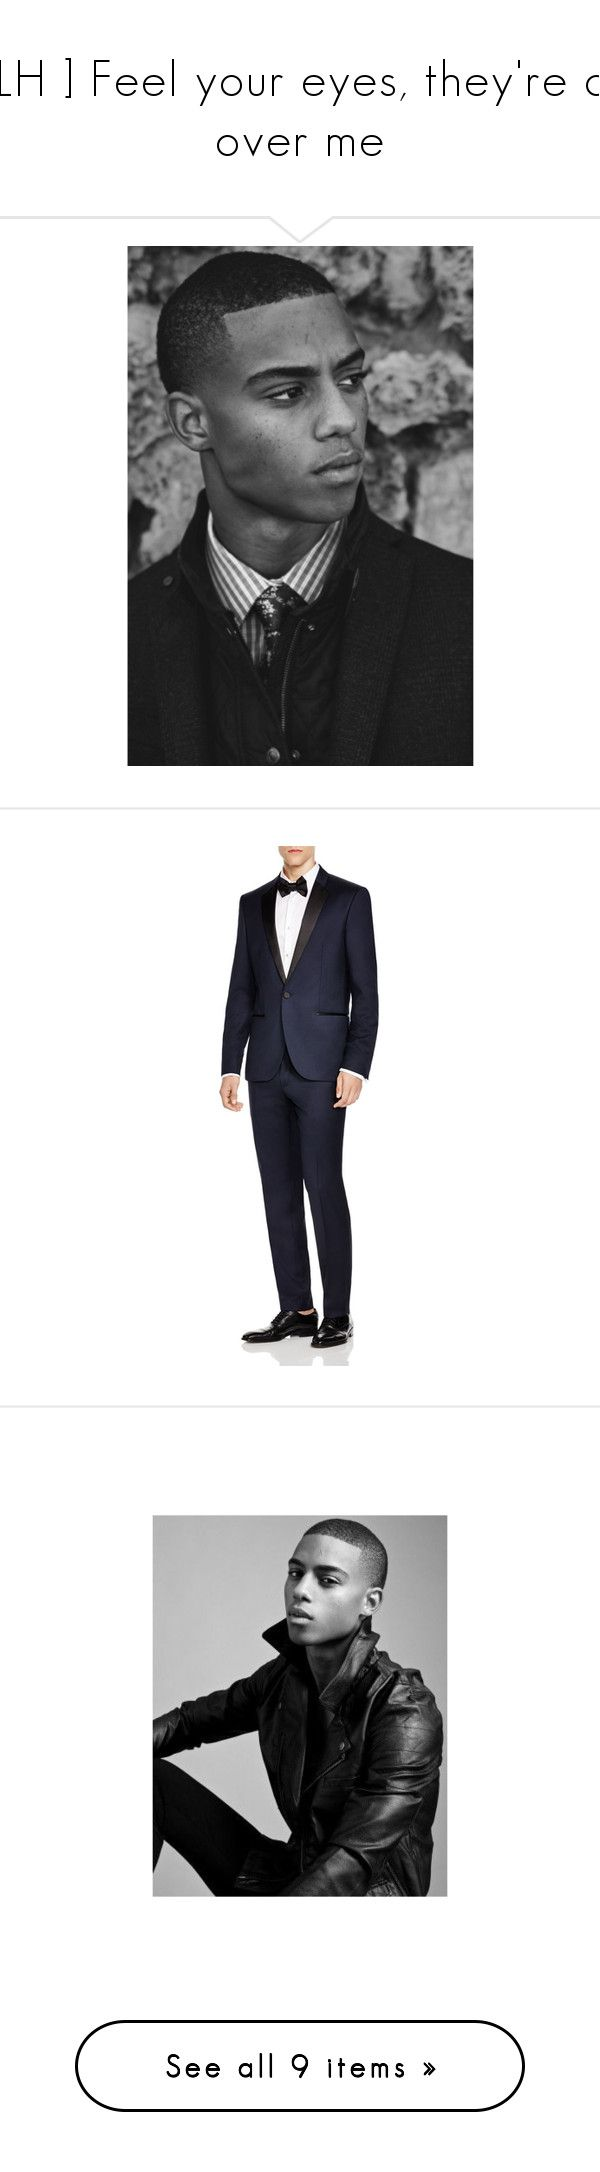 """[ LH ] Feel your eyes, they're all over me"" by zamolodchikova ❤ liked on Polyvore featuring men's fashion, men's clothing, men, navy, mens dinner suits, old navy mens clothing, mens navy tuxedo, mens tuxedo suit, keith powers and shoes"